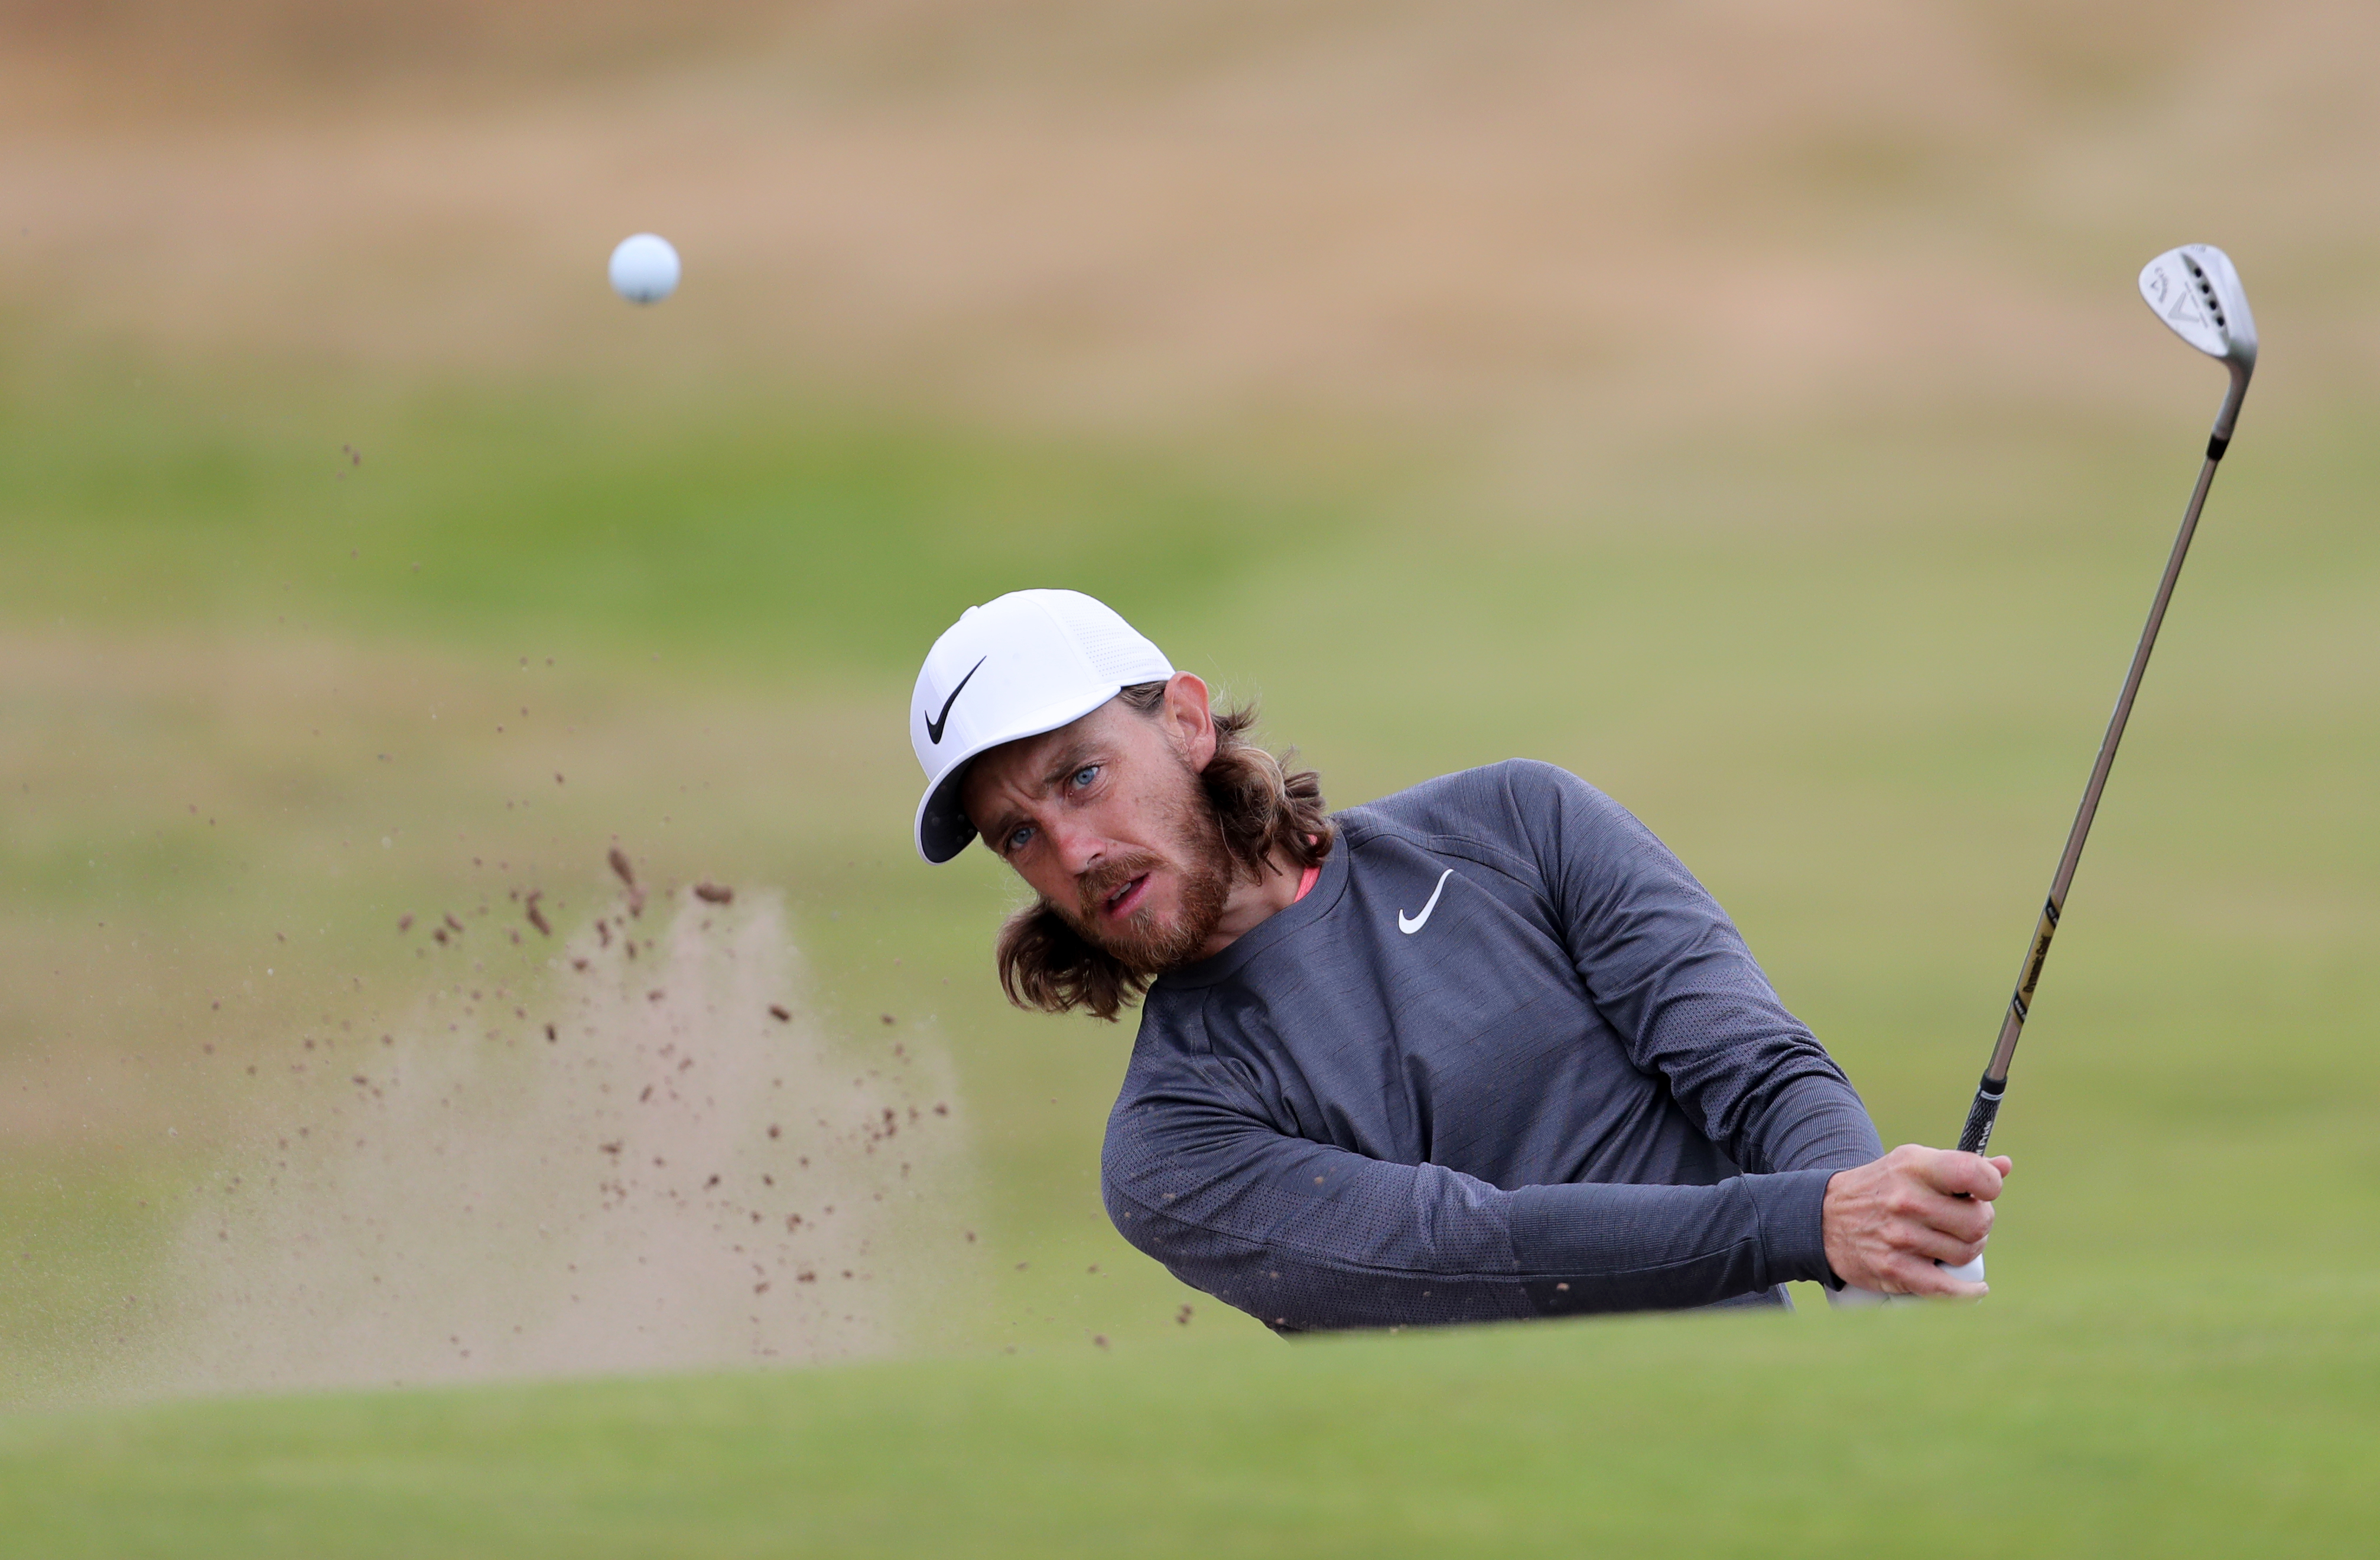 Fleetwood playing at the Open. Image: PA Images